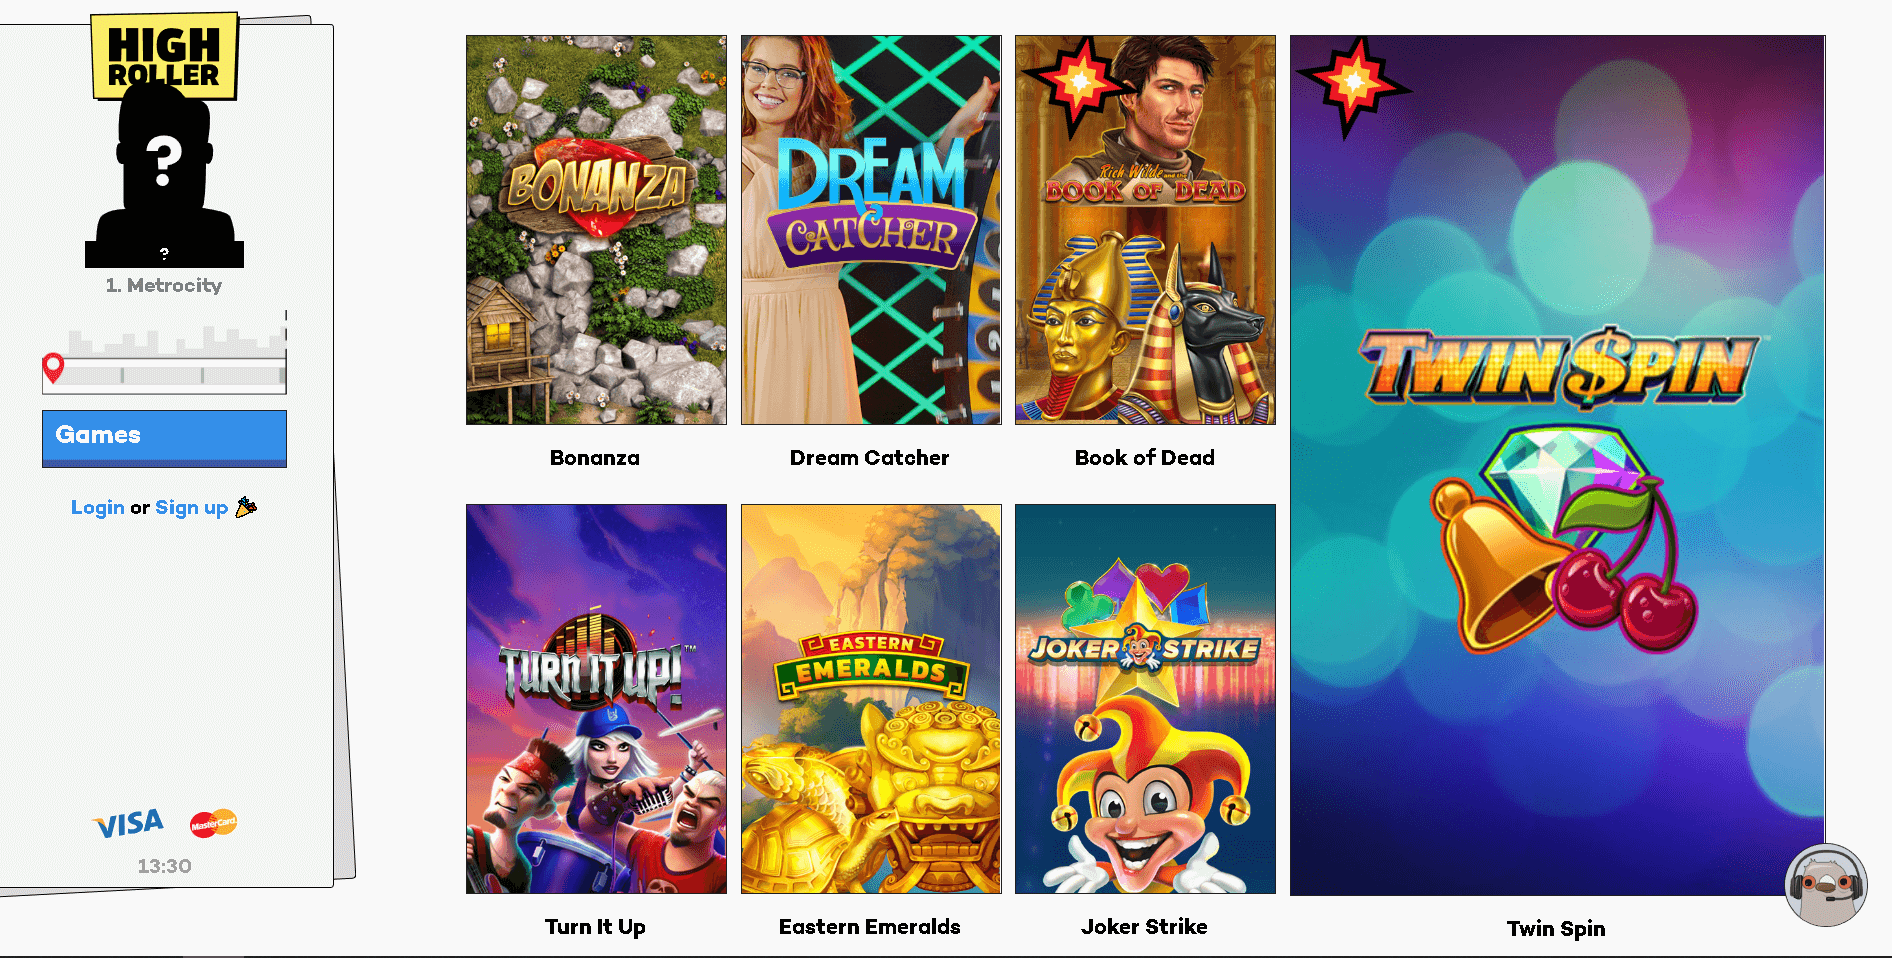 highroller casino slots